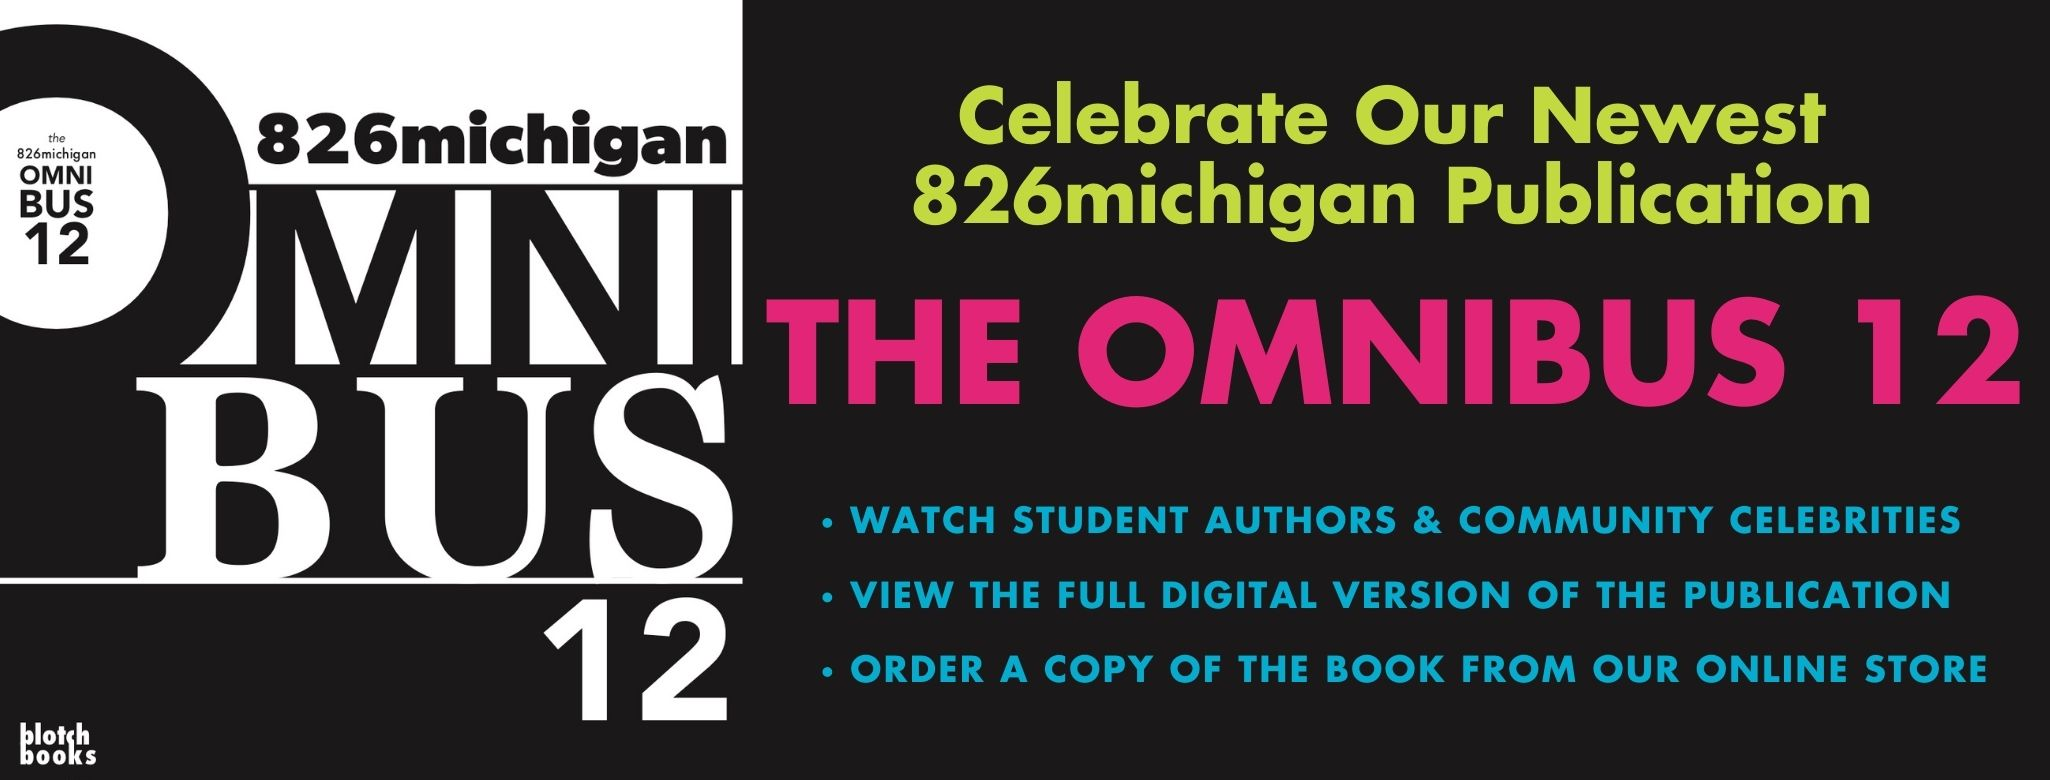 The 826michigan OMNIBUS 12 is here!